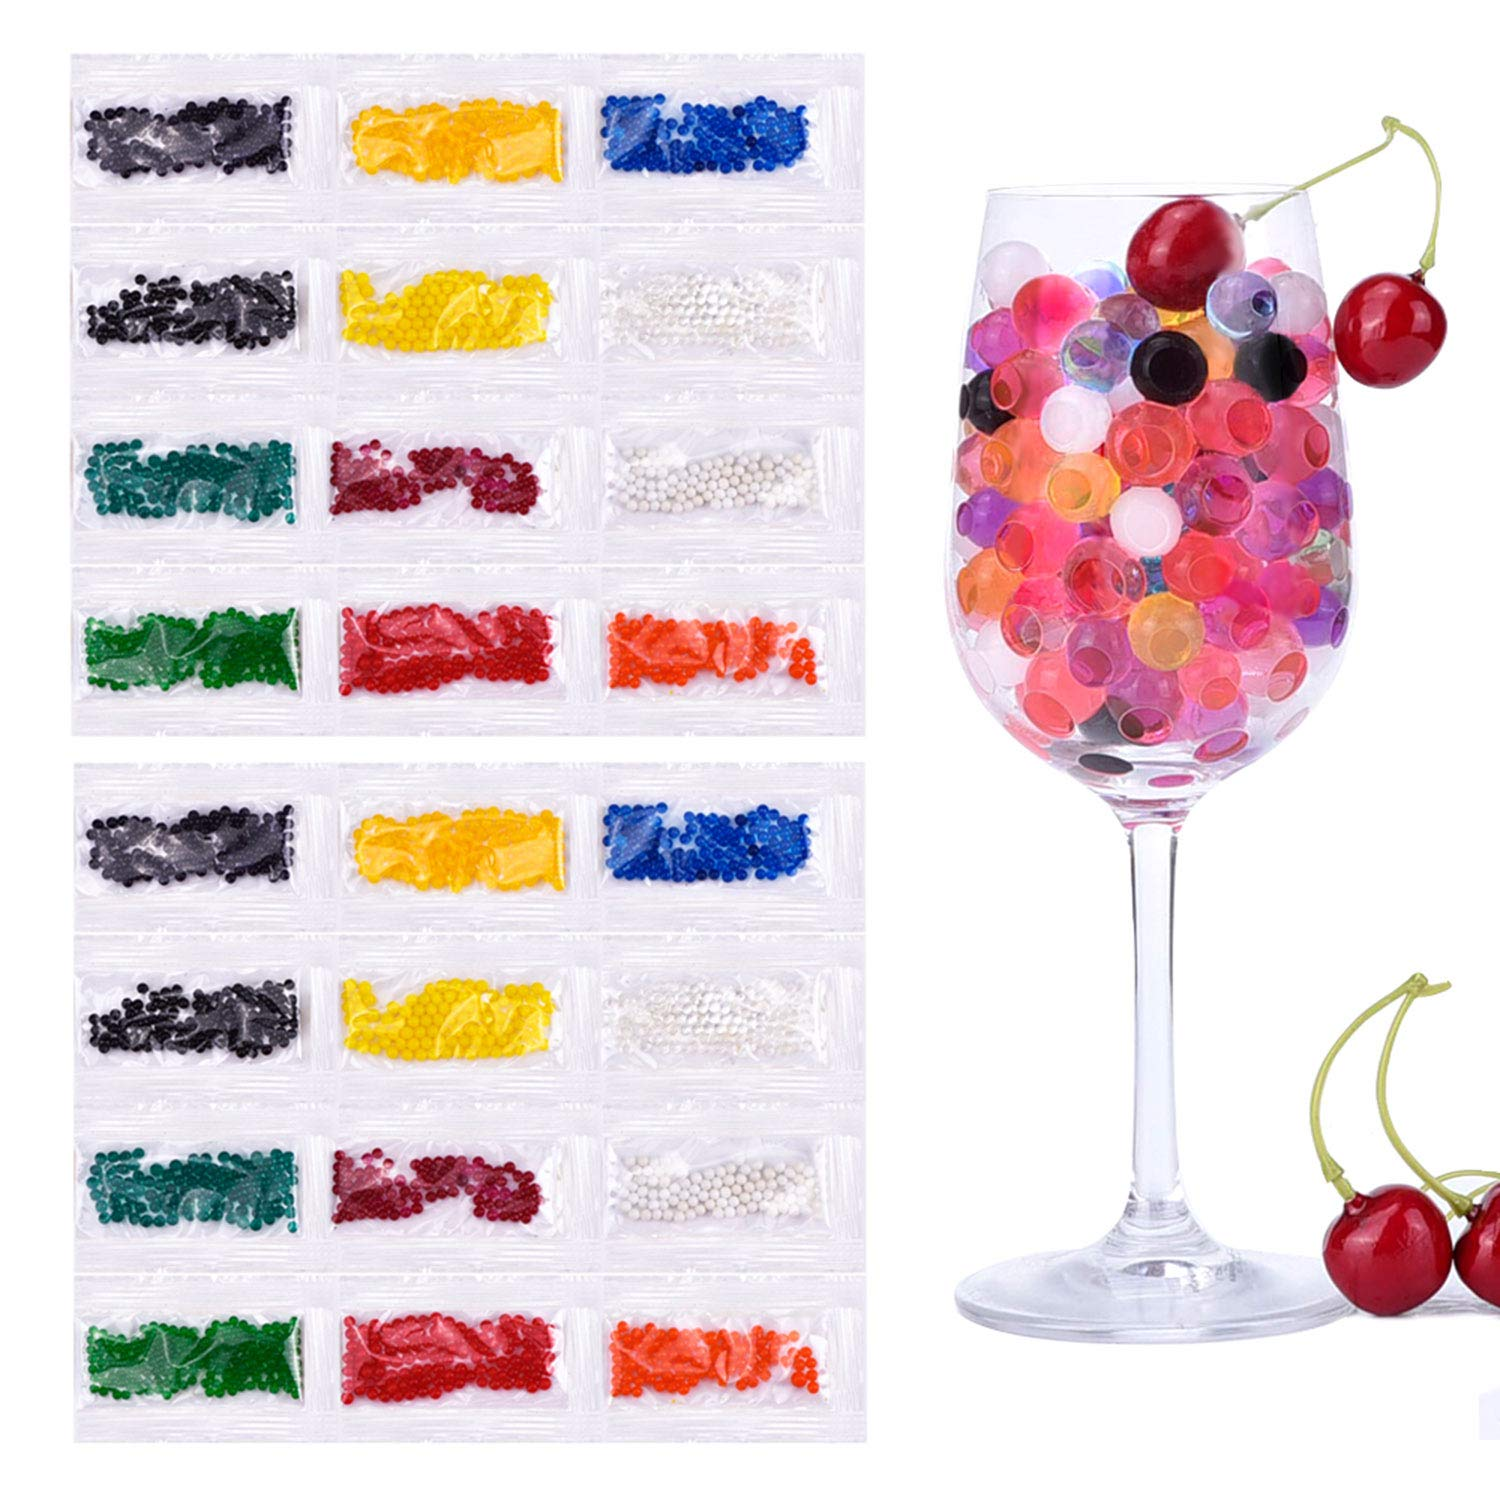 Clear Hicarer 10000 Pieces Vase Filler Beads Gems Water Gel Beads Growing Crystal Pearls Wedding Centerpiece Decoration